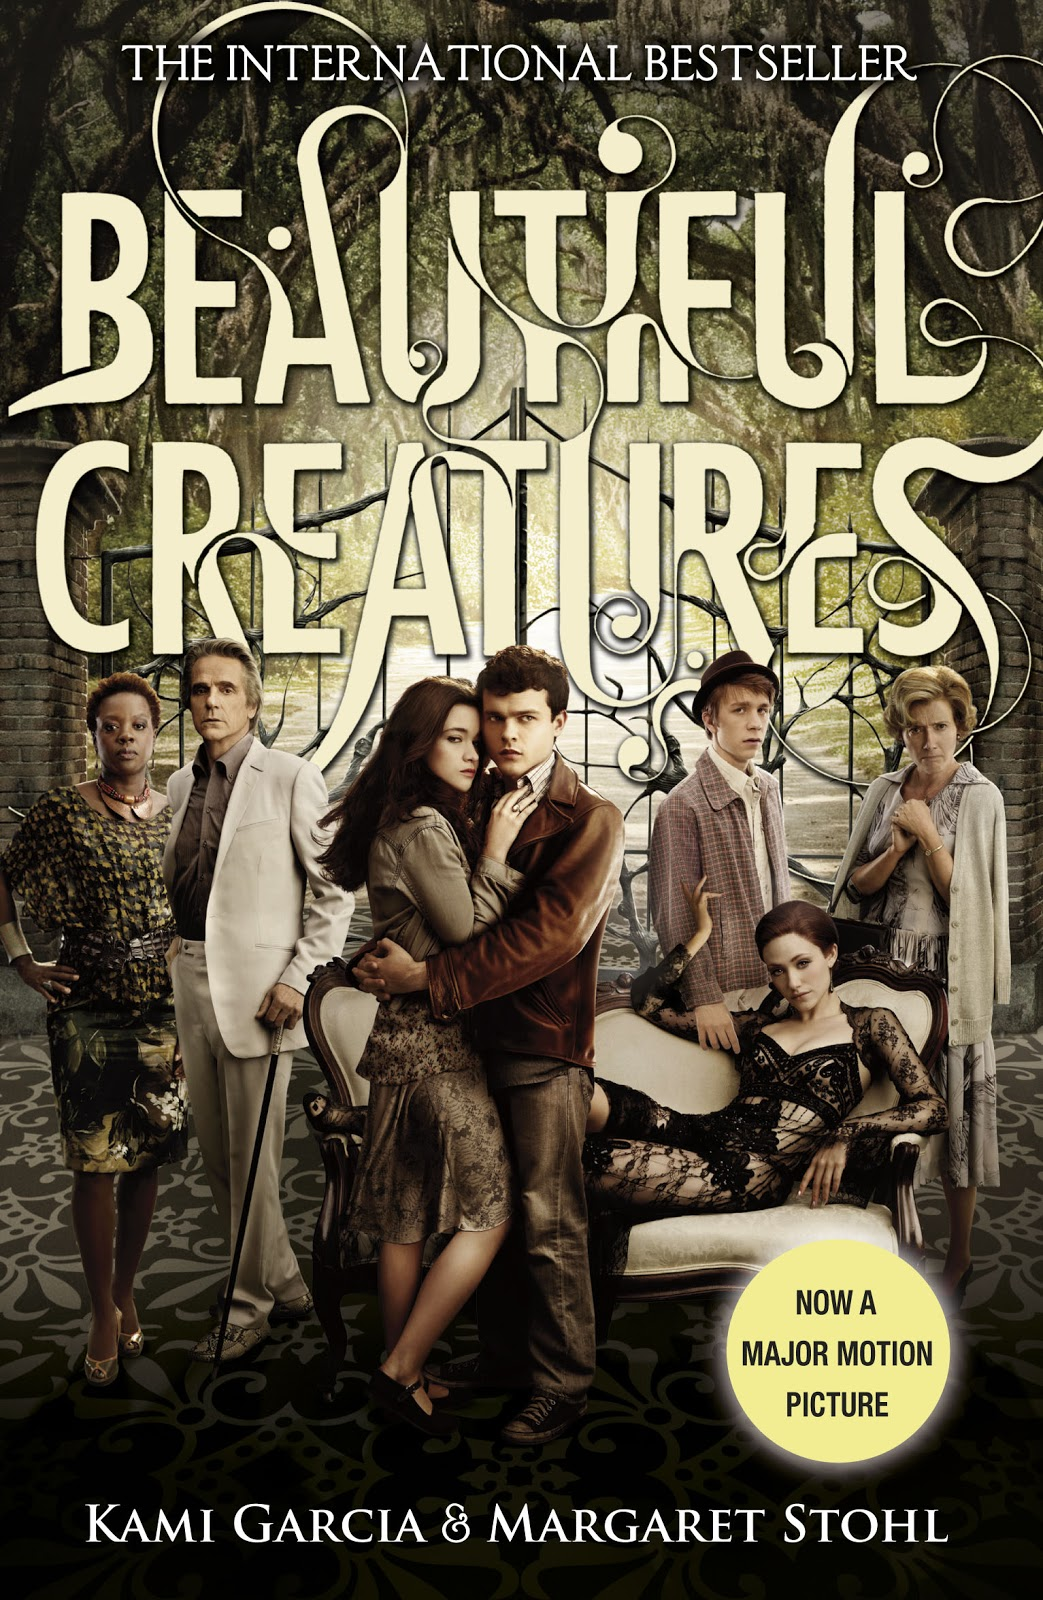 http://4.bp.blogspot.com/-BE5jPuiW8JE/UKv_iQABIzI/AAAAAAAAAws/VP36Mb1UvsM/s1600/Beautiful%20Creatures%20Movie.jpg